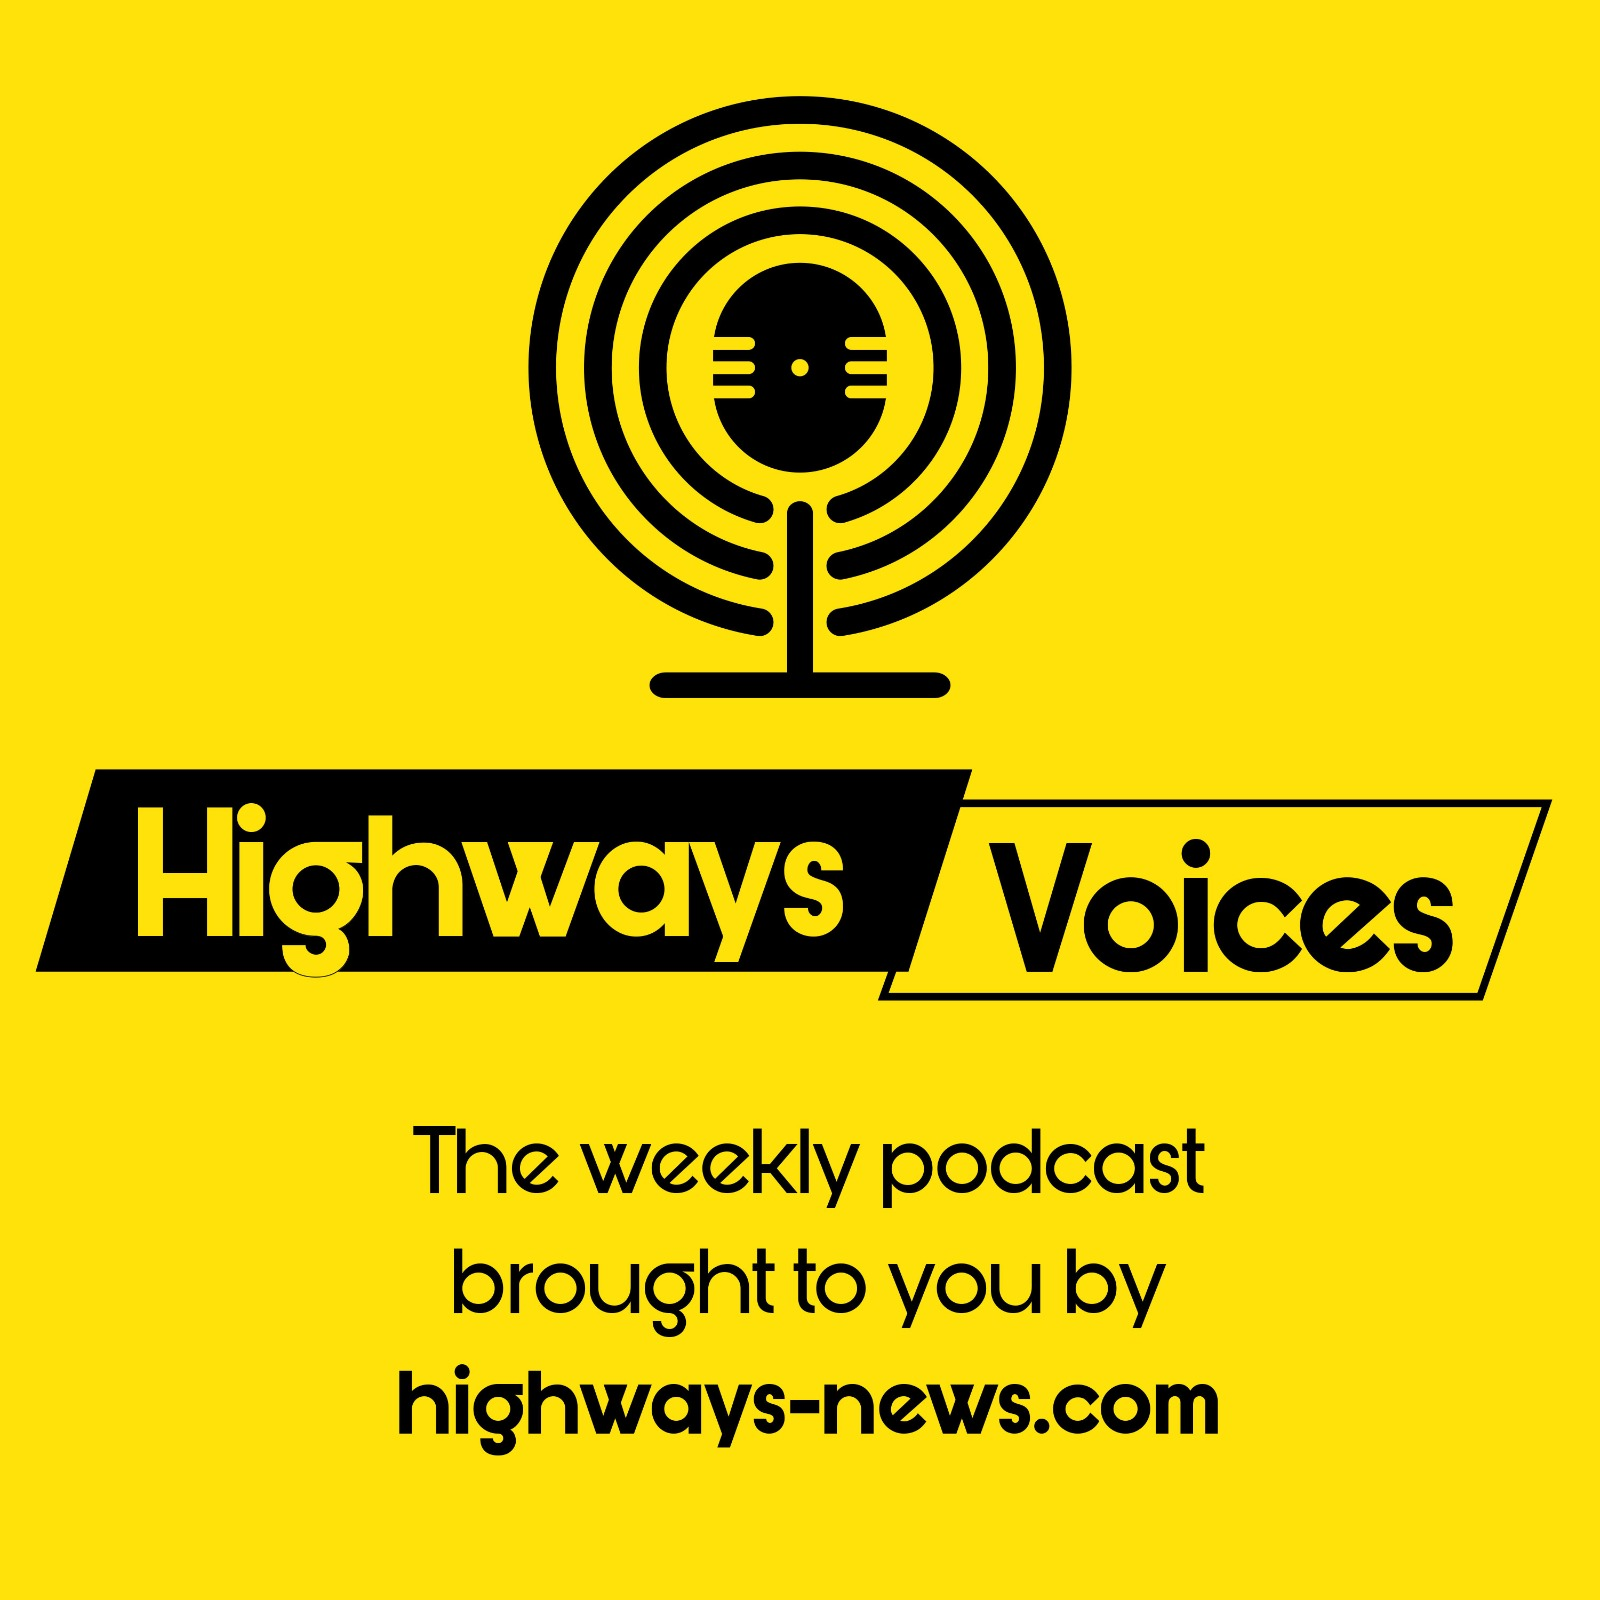 Artwork for podcast Highways Voices